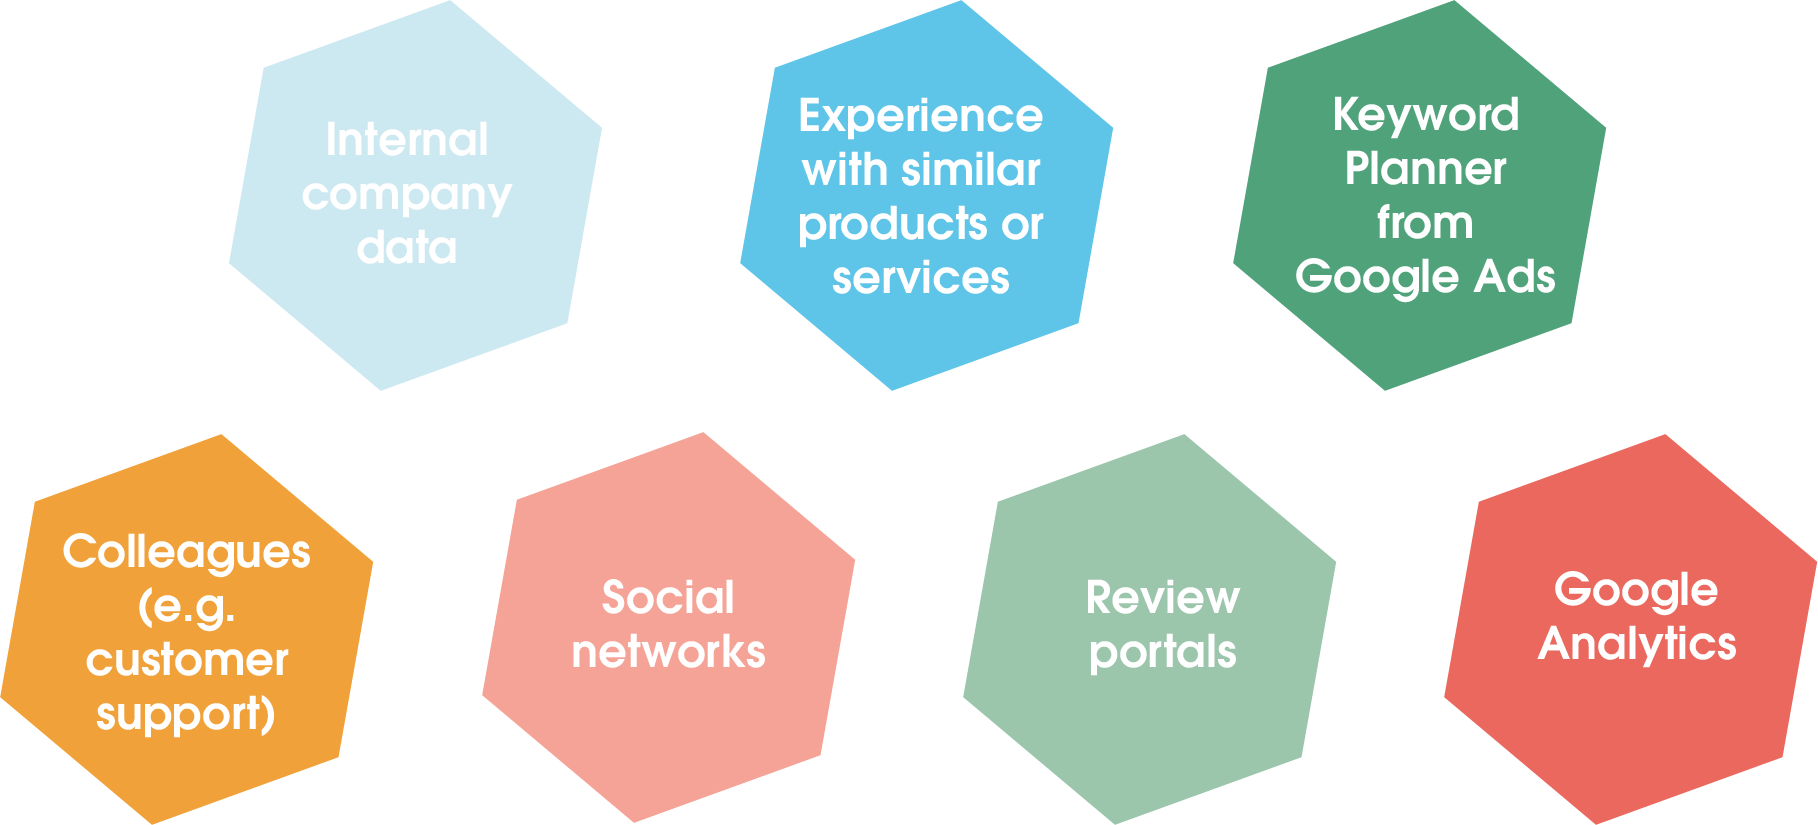 The image shows possible sources of information that you can include in a target group analysis. These include: - Internal company data - Experience with similar products/services - Keyword planner from Google Ads - Colleagues (e.g. from customer support) - Social networks - Rating portals - Google Analytics